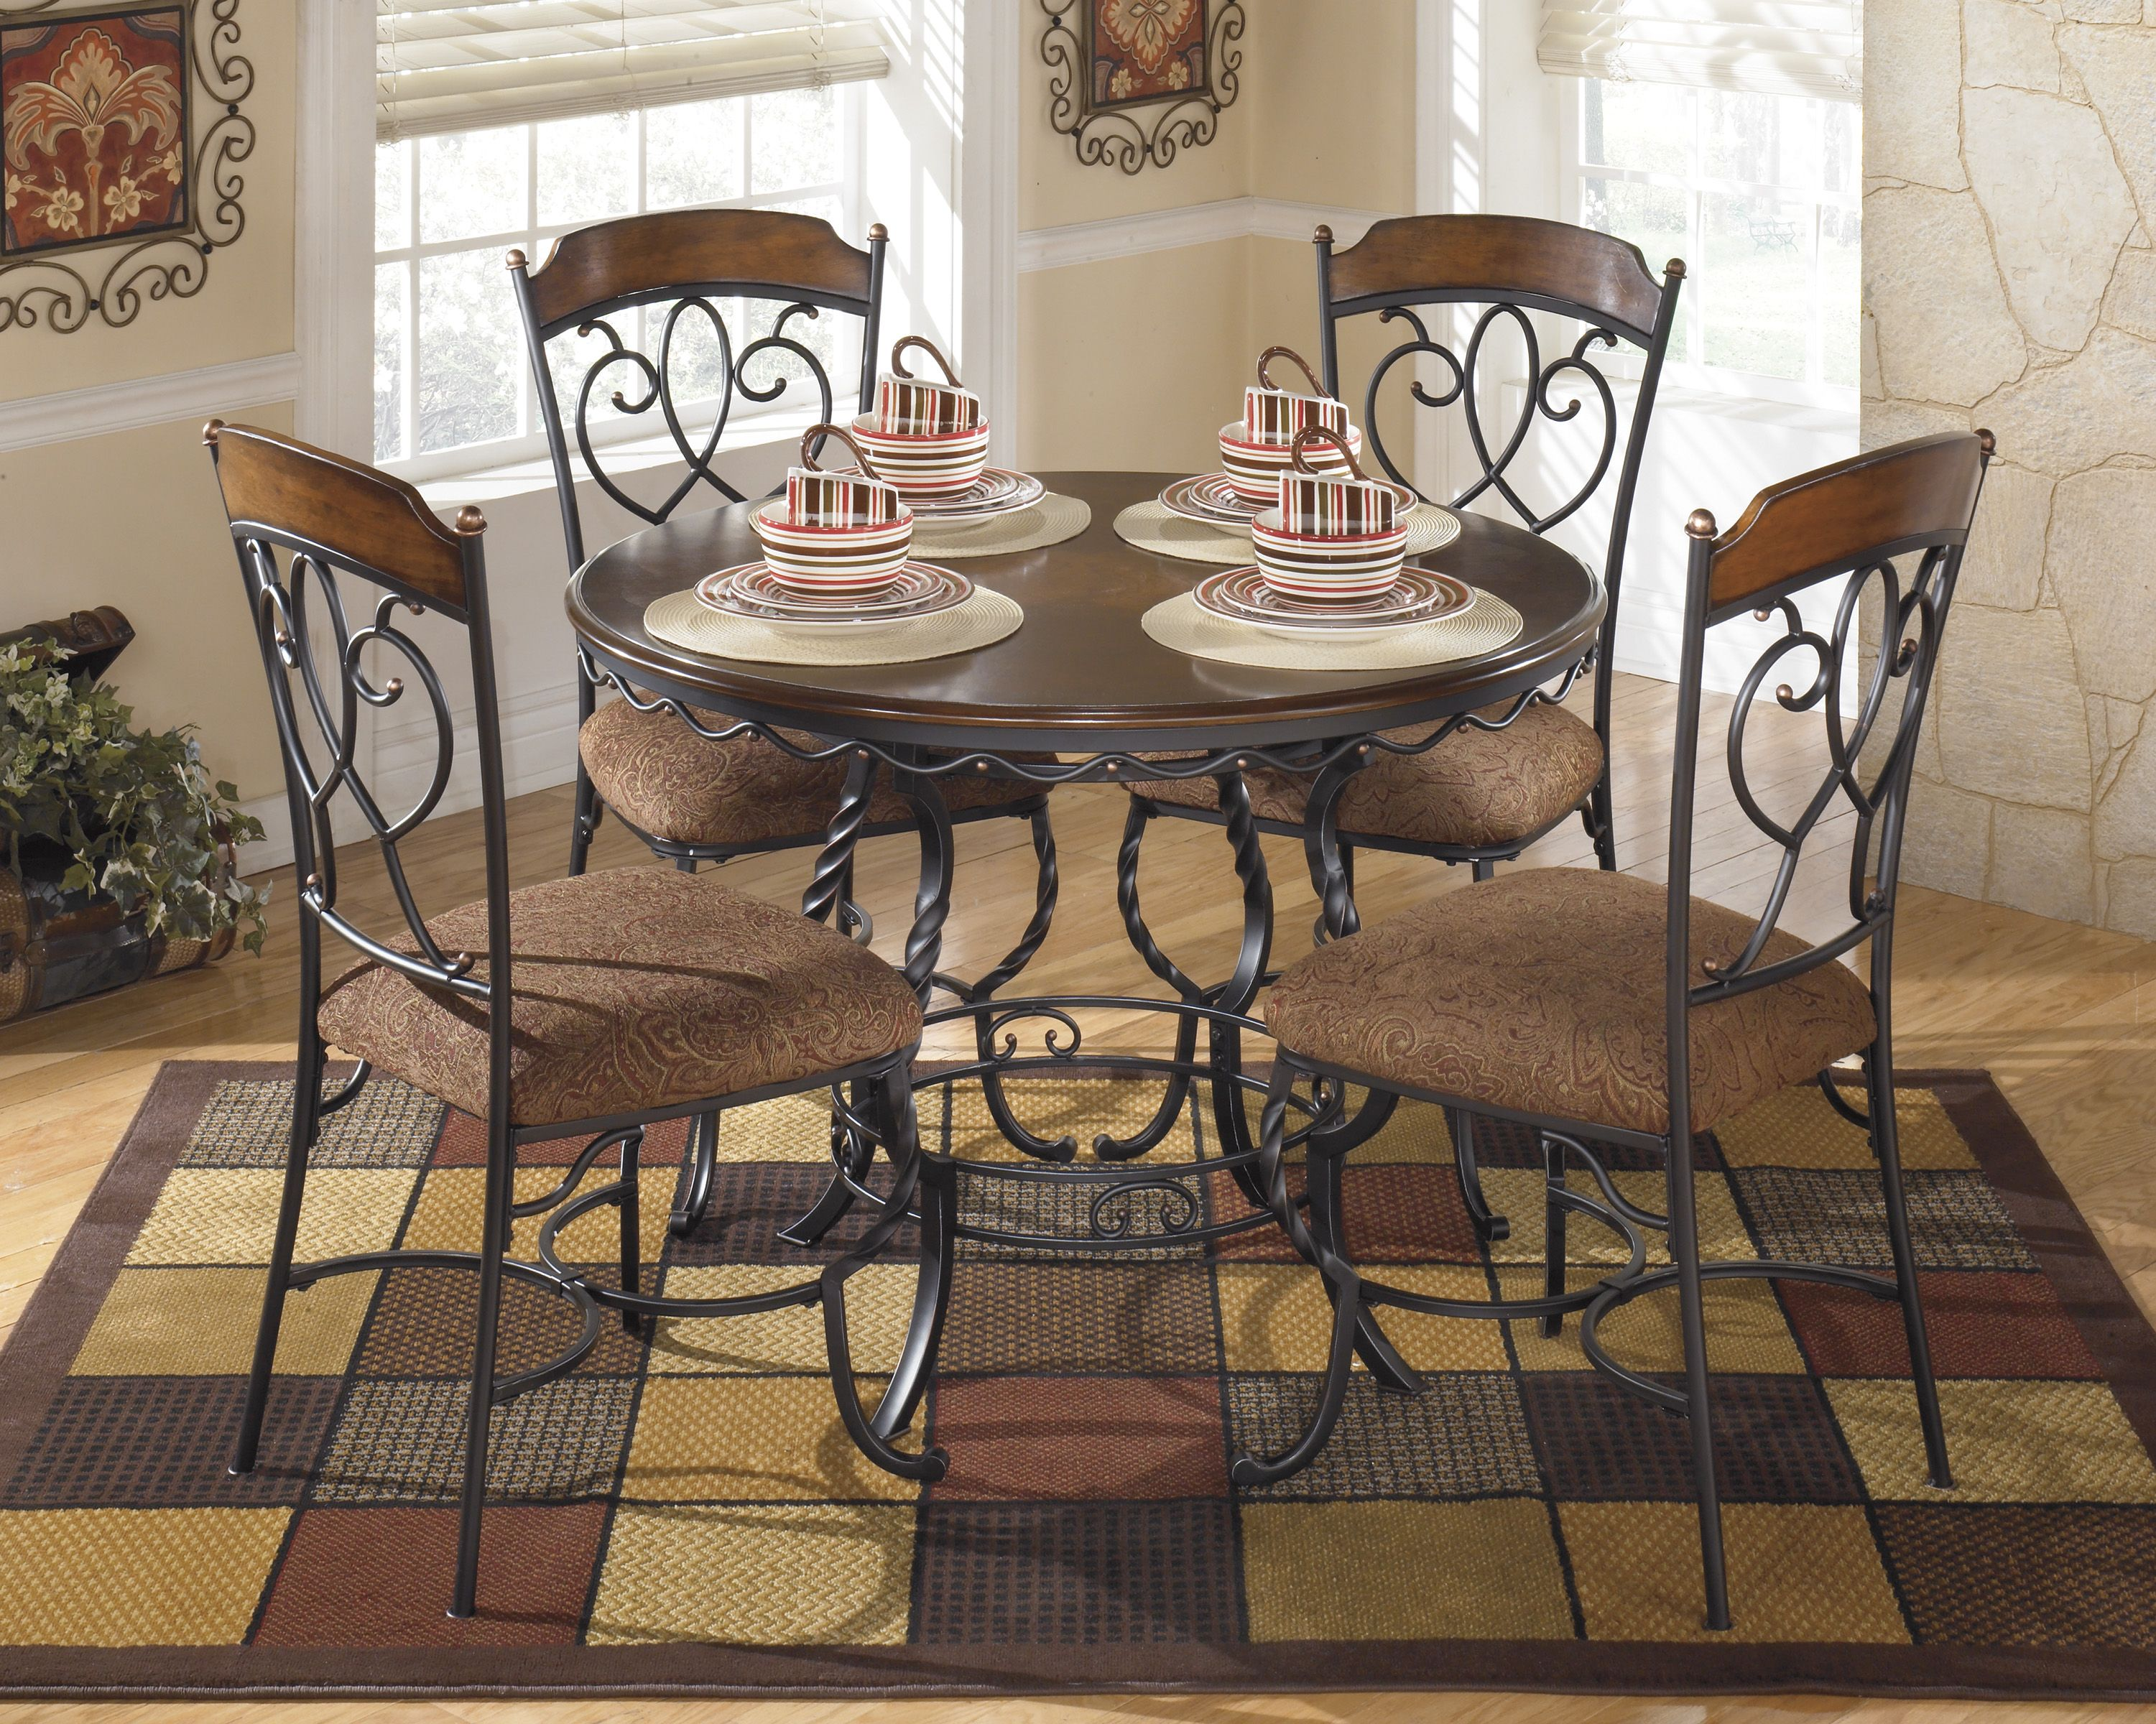 Round dining table and chairs for 4  The uNolau